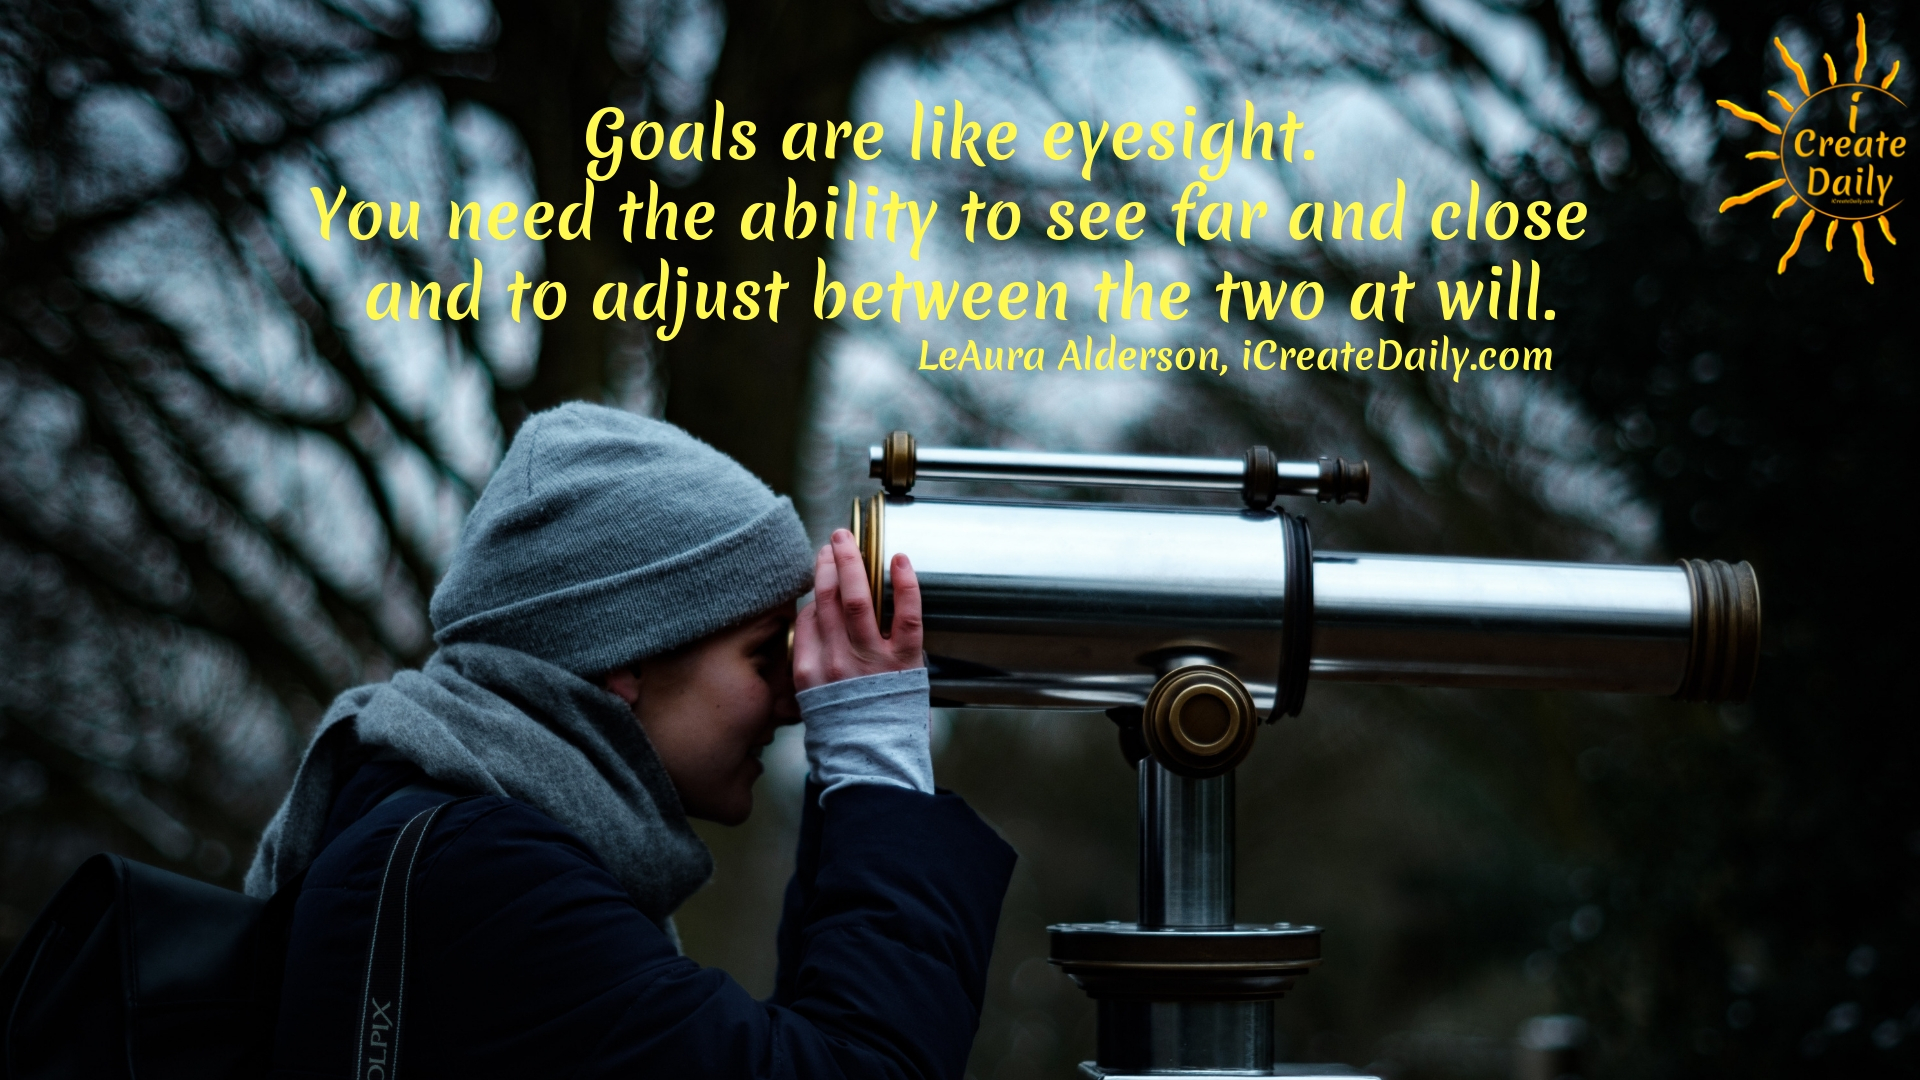 """""""Goals are like eyesight. You need the ability to see far and close and to adjust between the two at will.""""~LeAura Alderson, cofounder-iCreateDaily.com® #LifeGoals #Dreams #PersonalAndProfessionalGrowth #PersonalDevelopment #"""